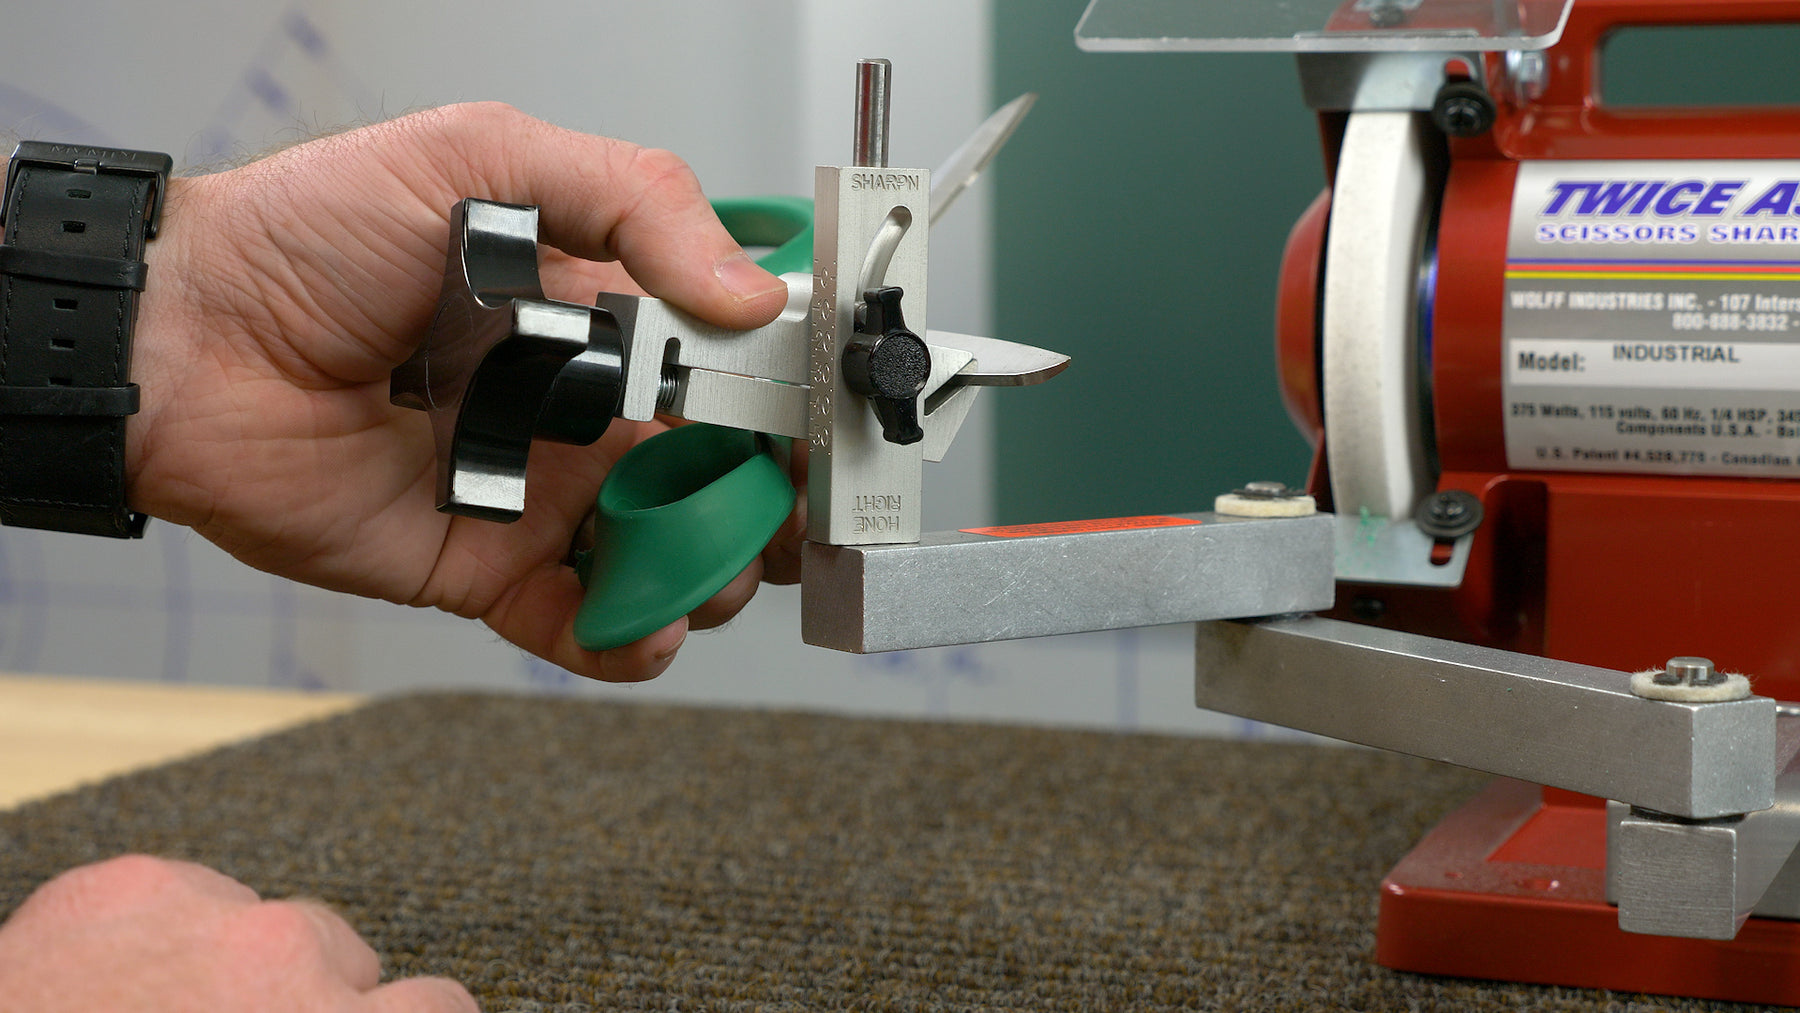 How to Sharpen a Pair of Scissors on the Twice as Sharp® Sharpening System